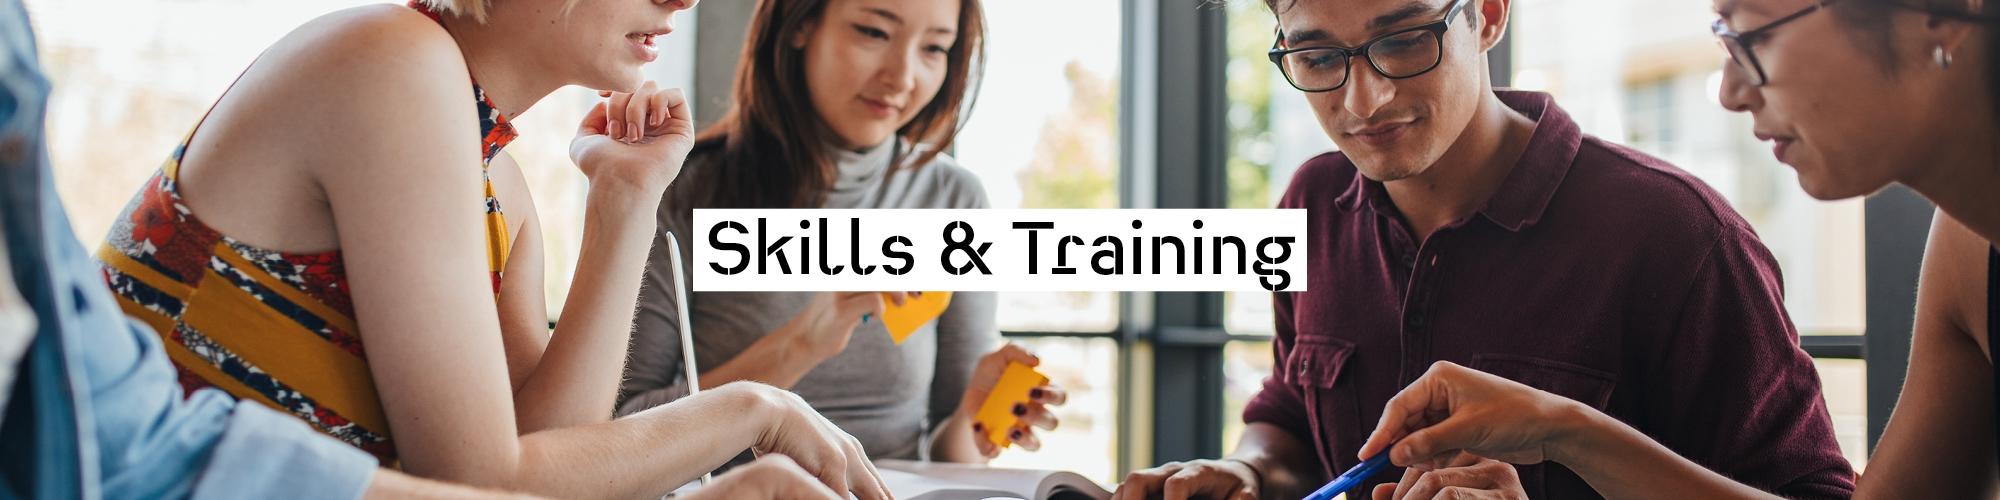 The Students' Union offers a broad range of skills & training workshops from first aid to leadership! We'll also help you reflect on your experiences through the Hallam Award for your C.V.